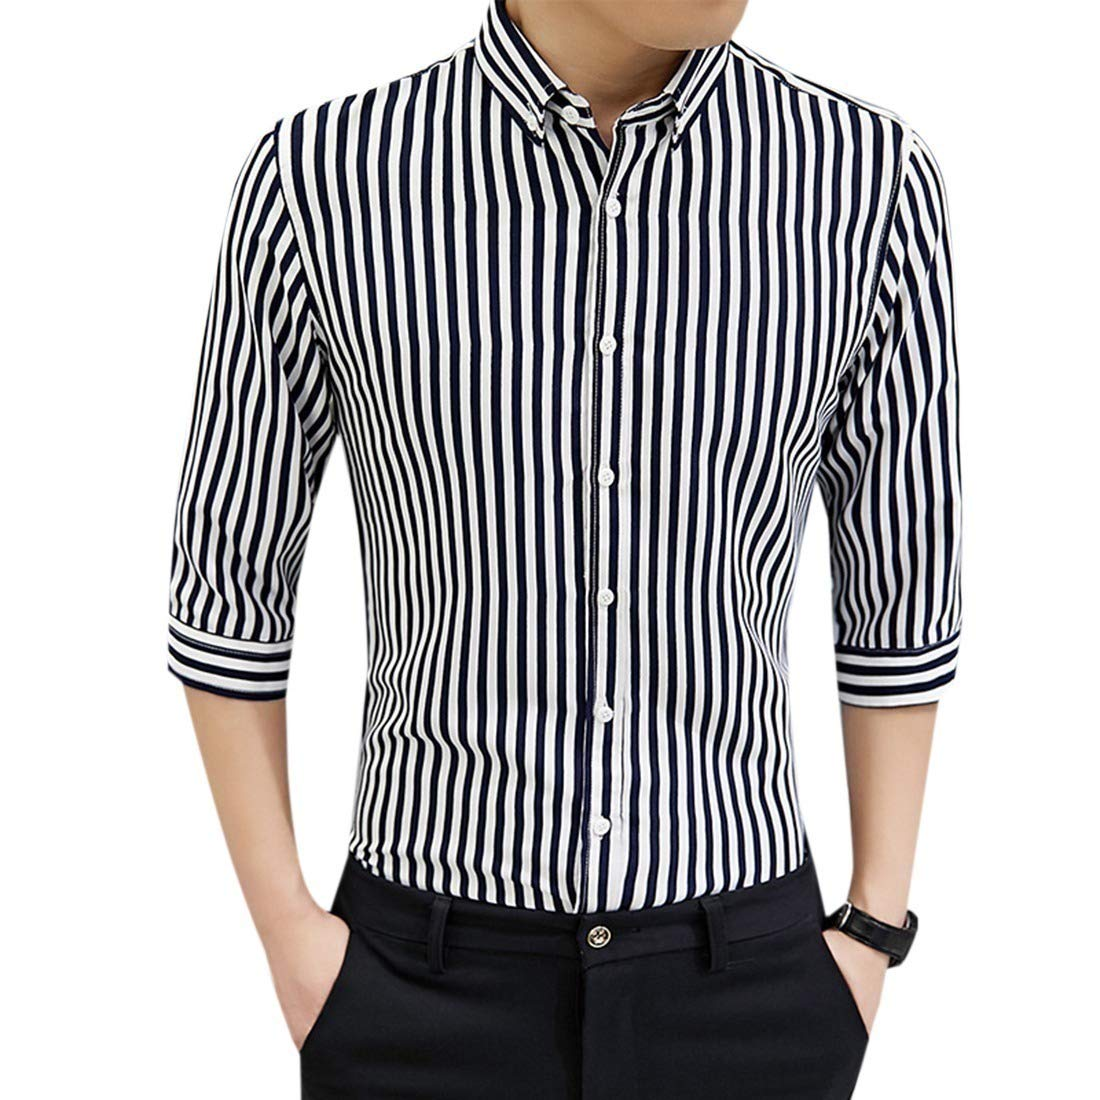 Comaba Men Slim Fit Striped Printed Casual Three Quarter Sleeve Business Shirts 3 S